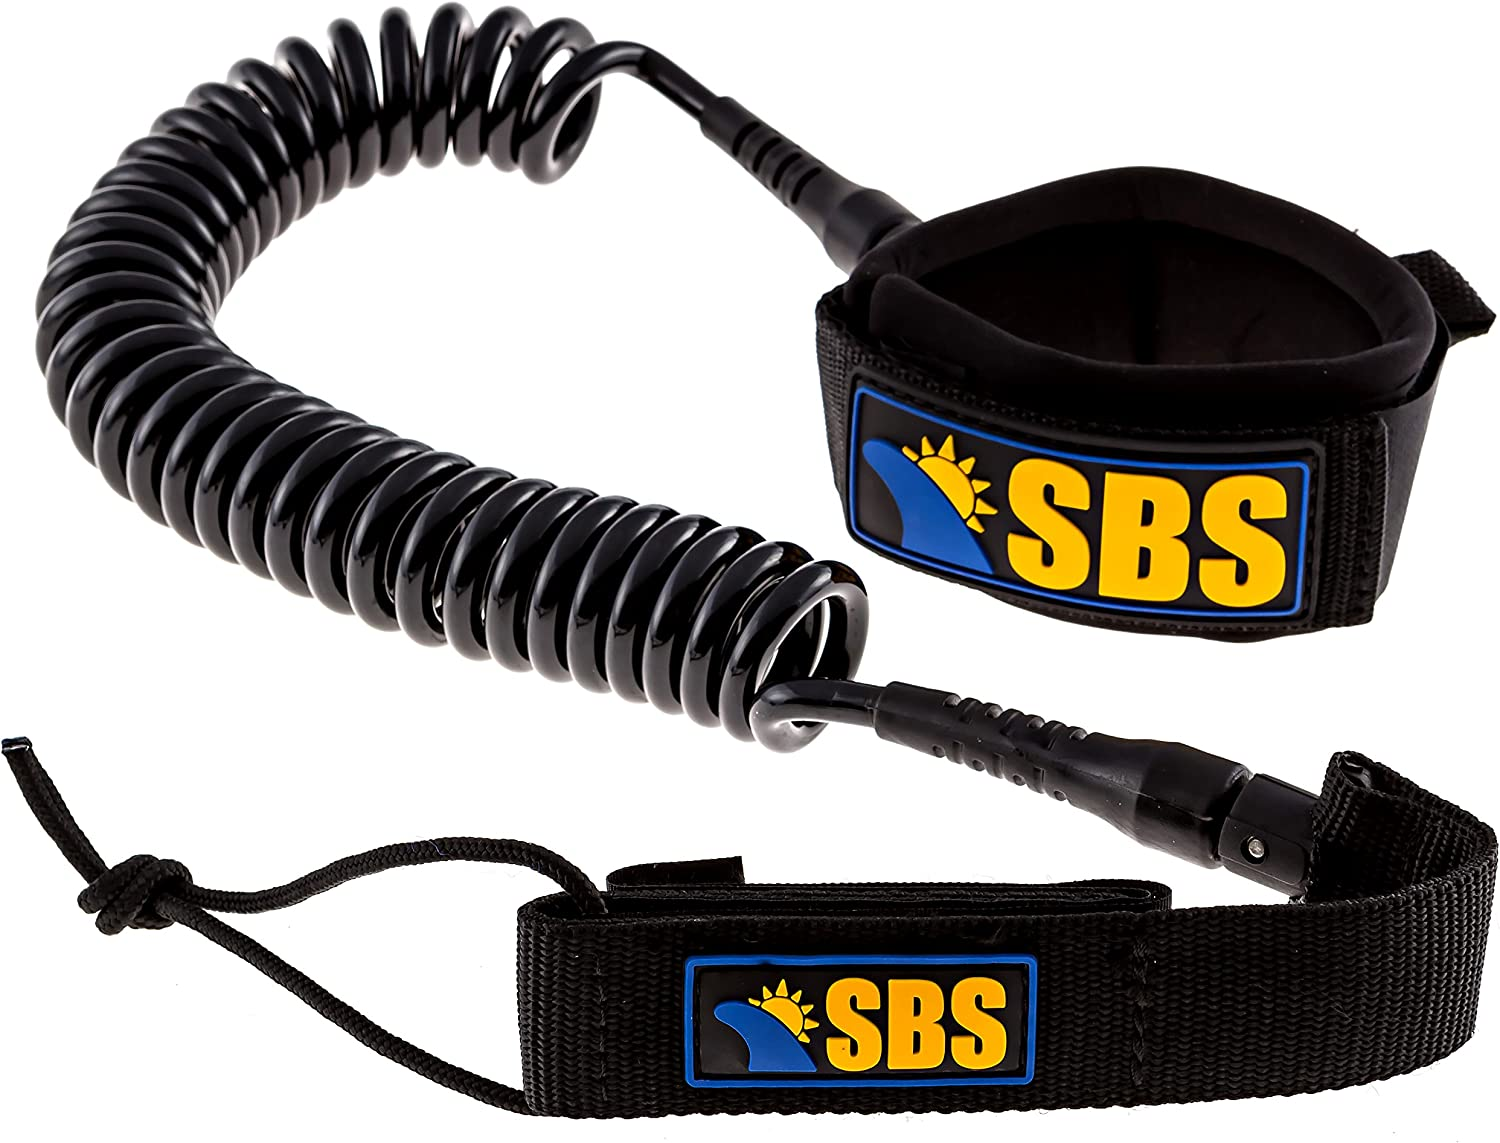 Santa Barbara Surfing SBS 10' Coiled Max 73% OFF It is very popular Leash Guaranteed for - SUP